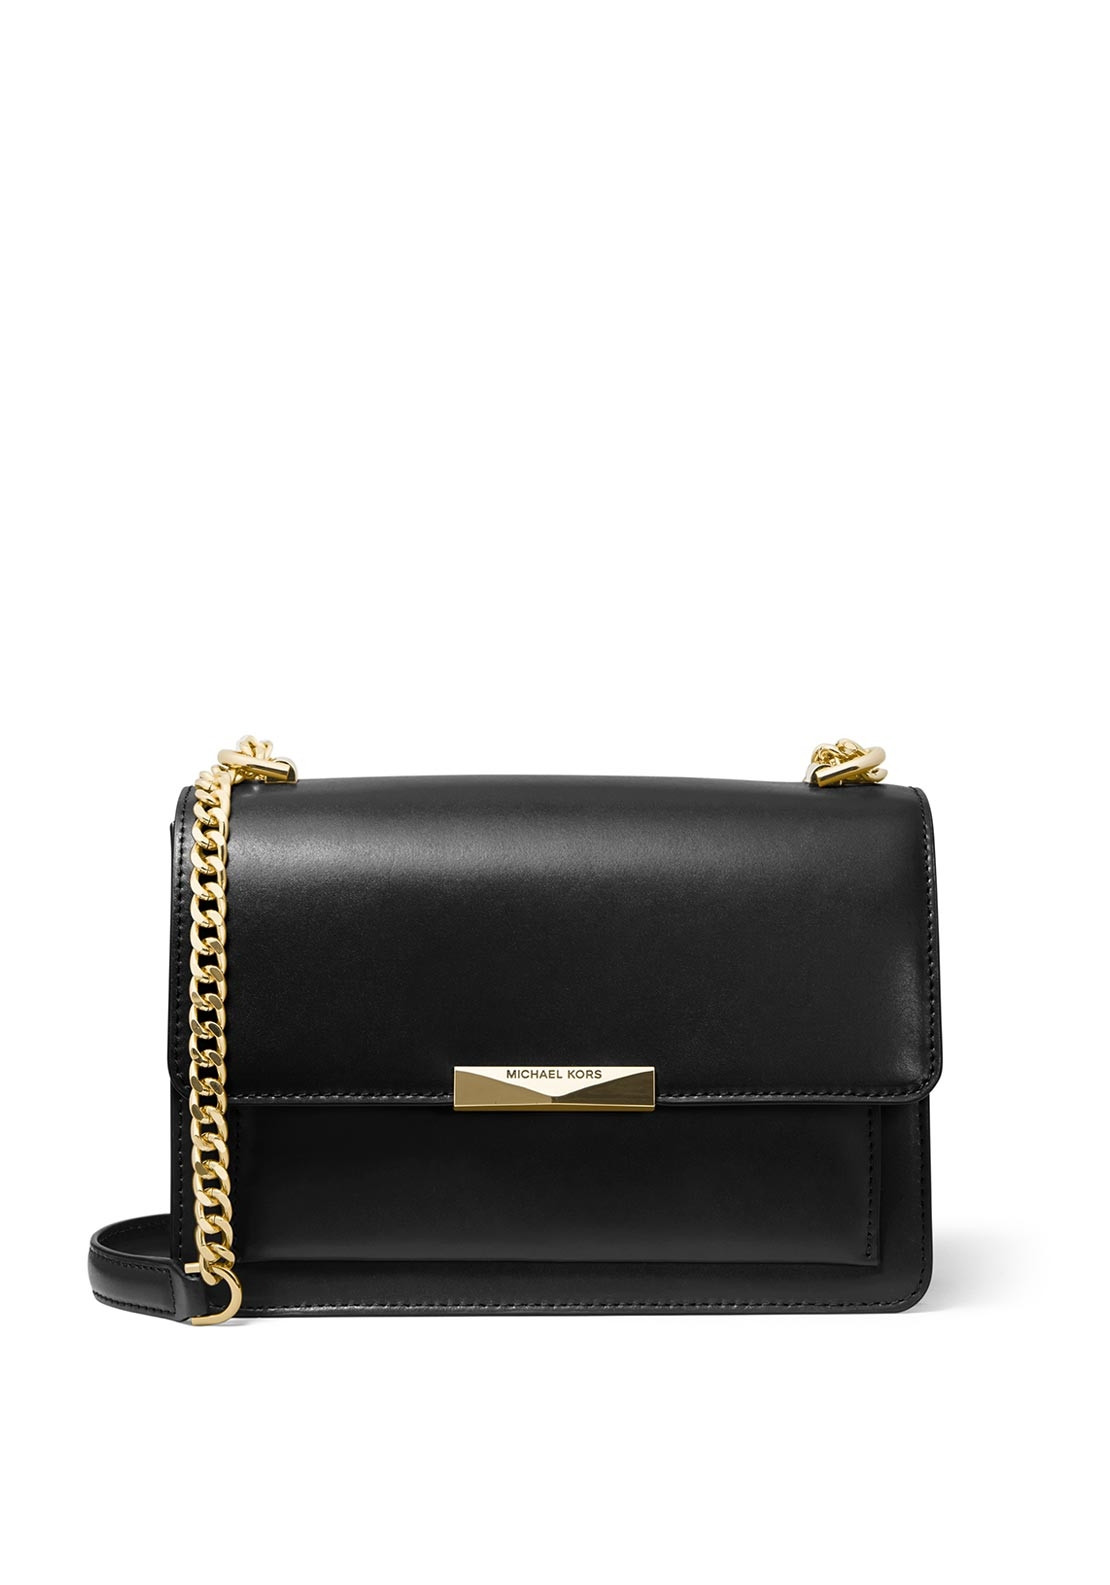 dfc8783075ae37 MICHAEL Michael Kors Jade Leather Shoulder Bag, Black. Be the first to  review this product